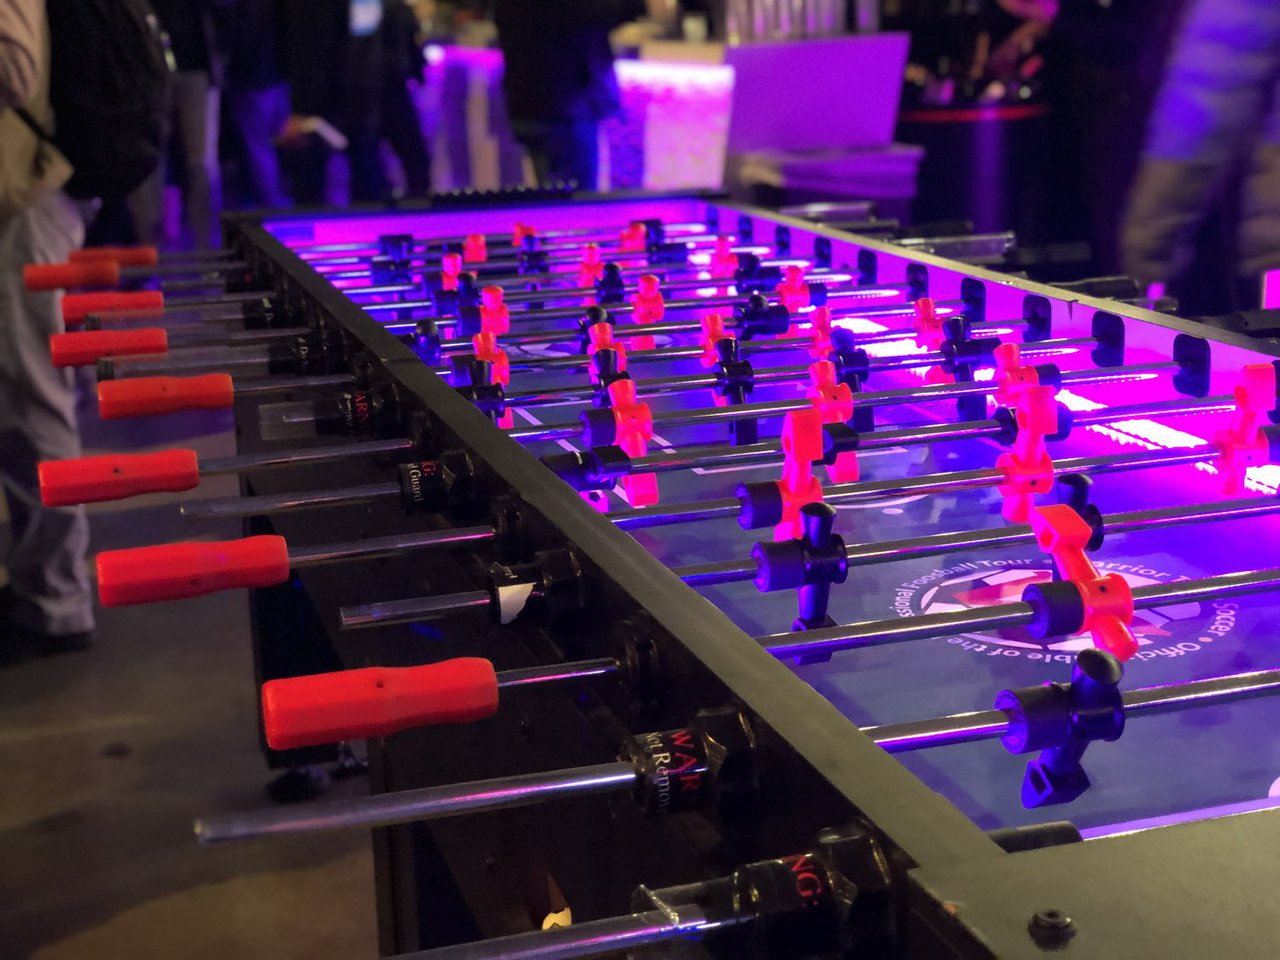 Build Things That Matter Powerful Party photo LED FoosBall For Company Party.jpg